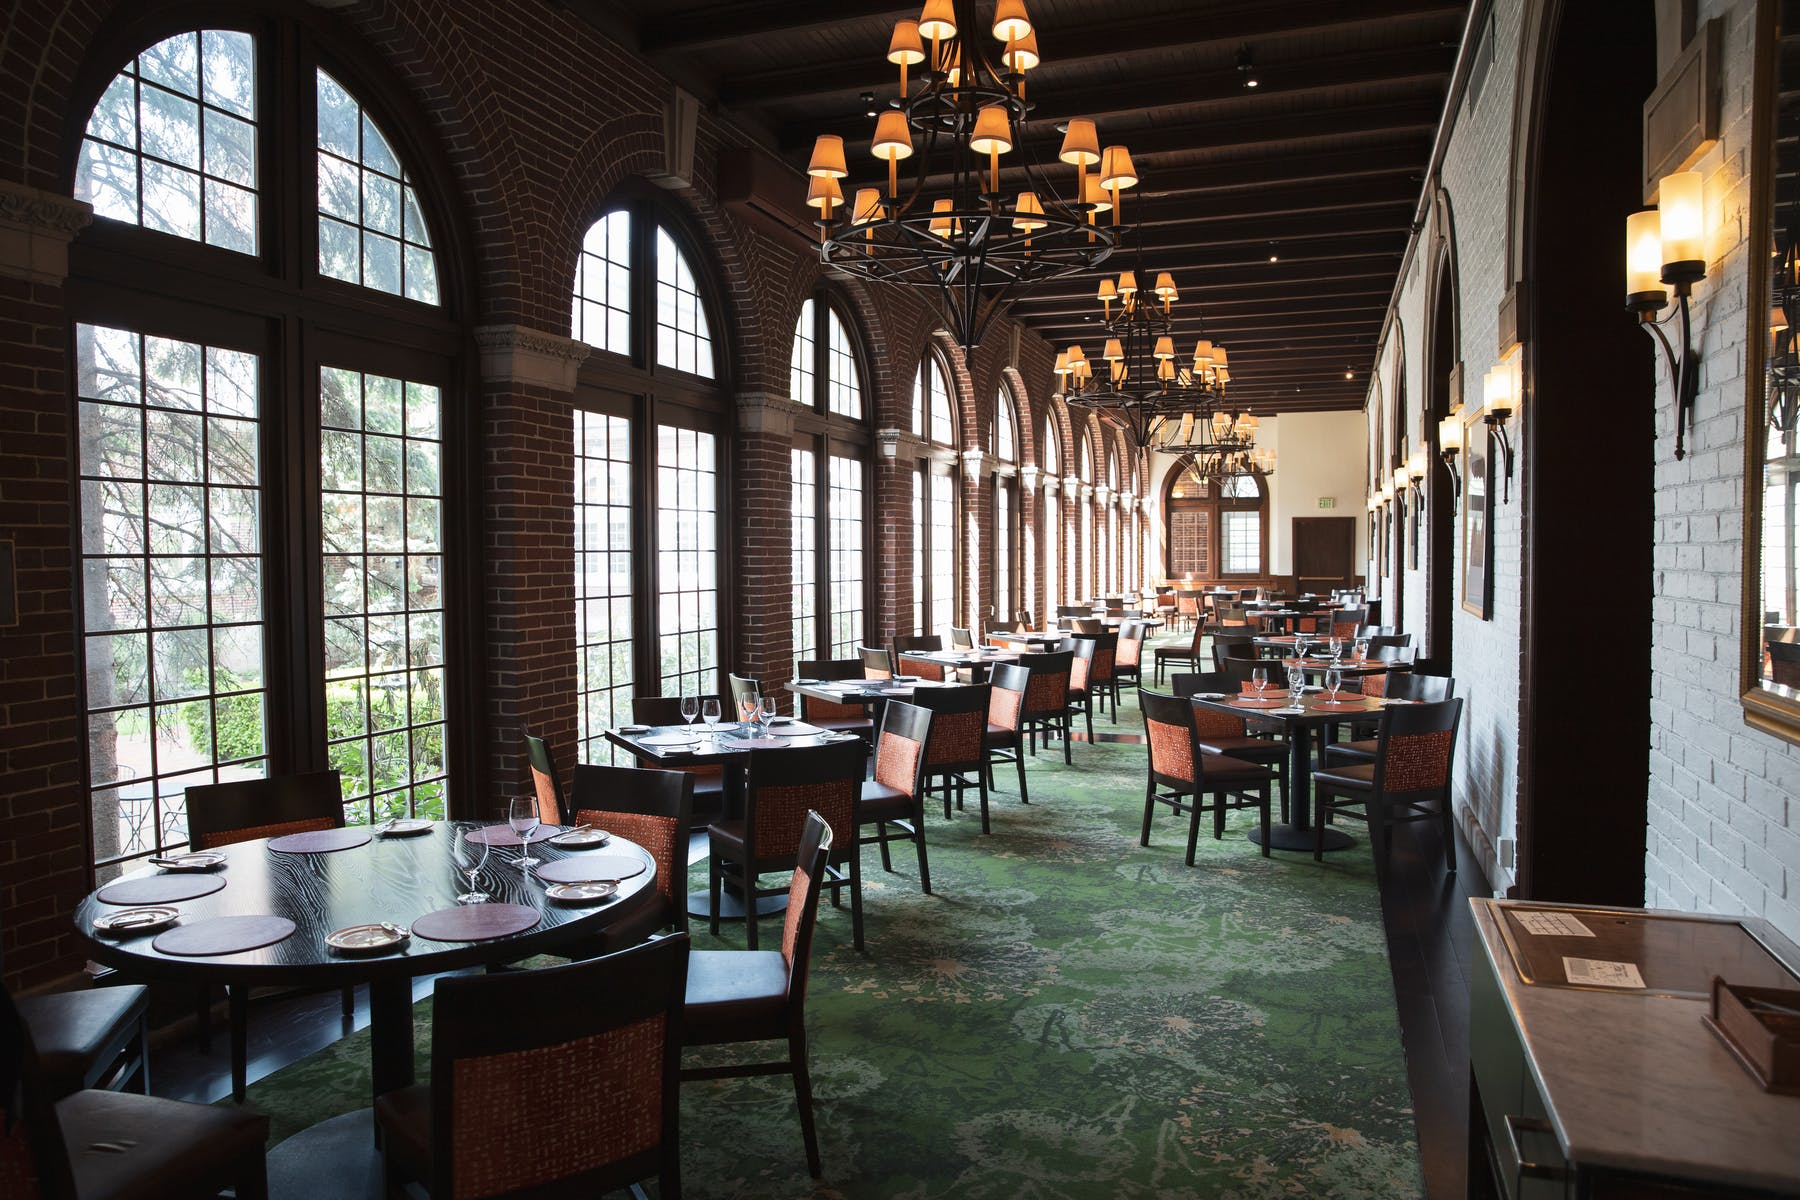 The dining room of the American Bounty Restaurant on the CIA campus in the Hudson Valley, NY.